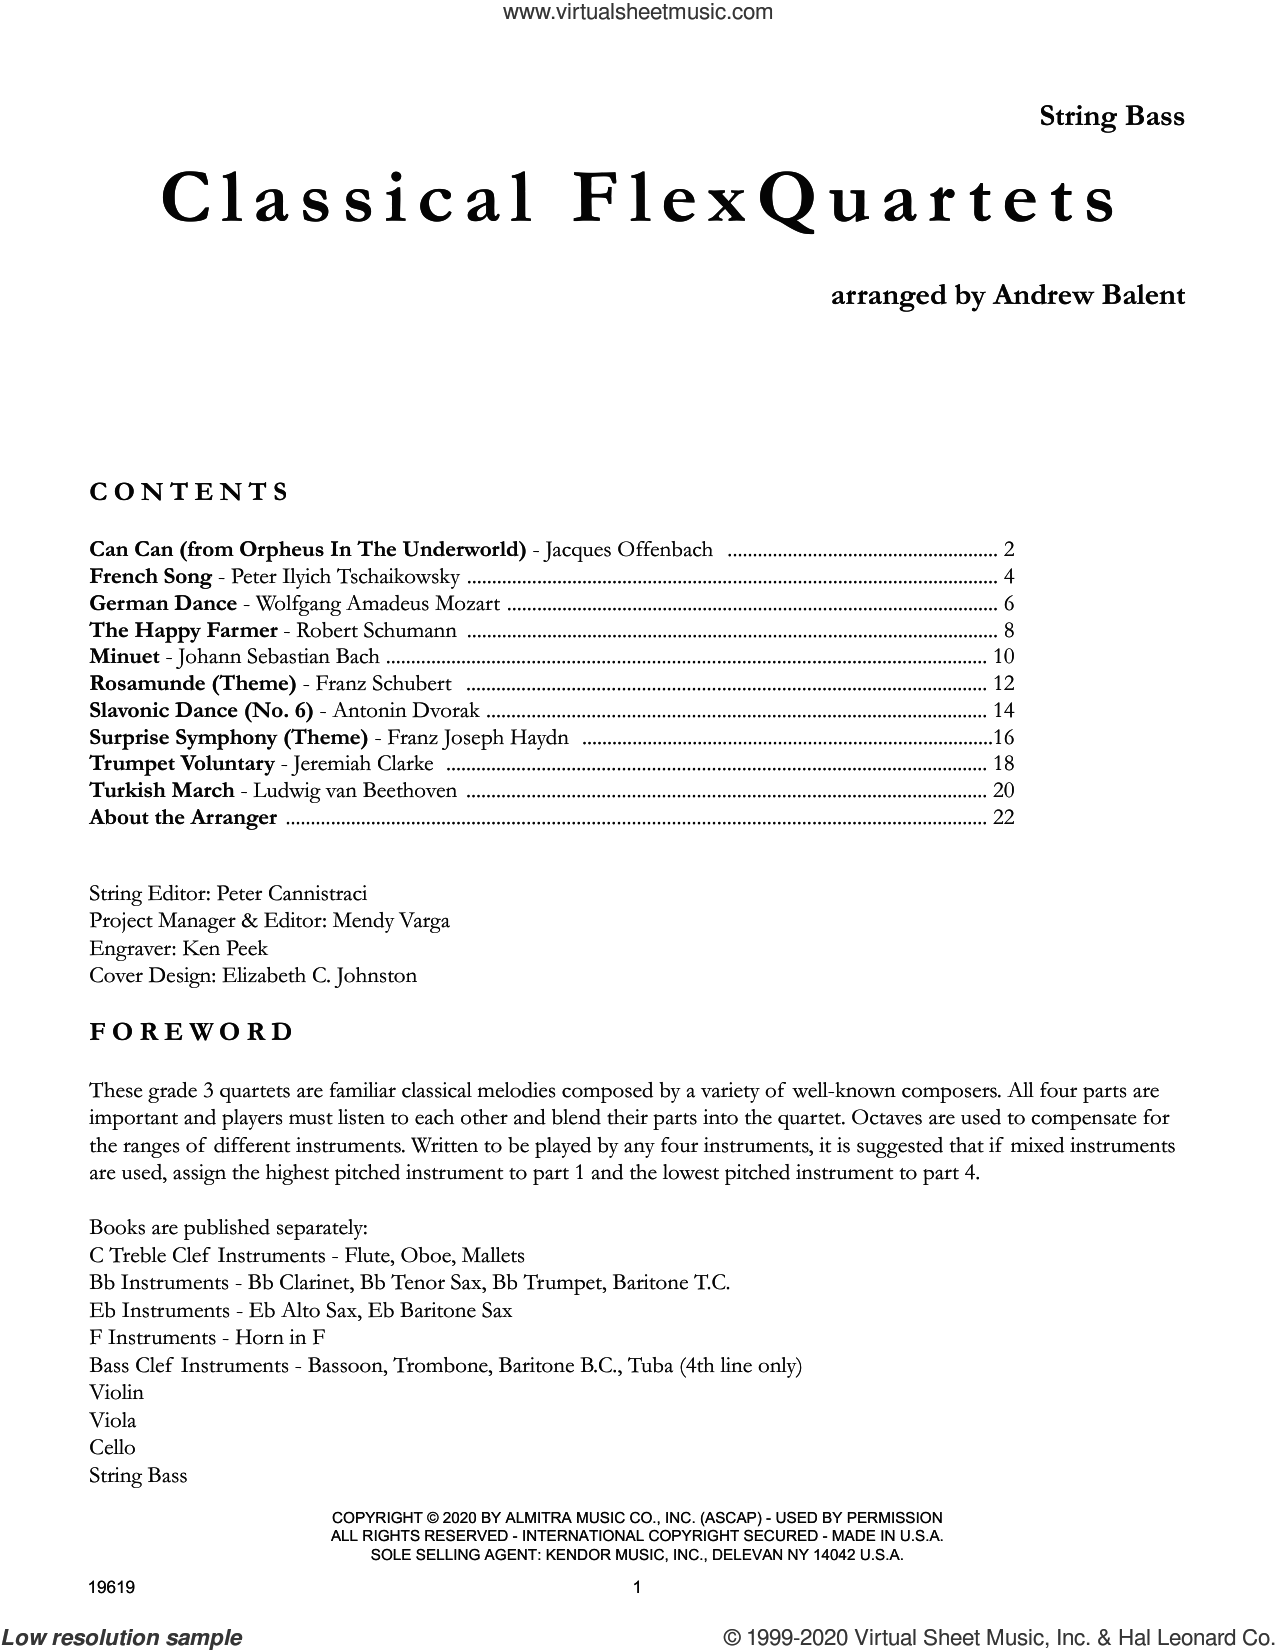 Classical Flexquartets (arr. Andrew Balent) - String Bass sheet music for string orchestra  and Andrew Balent, classical score, intermediate skill level